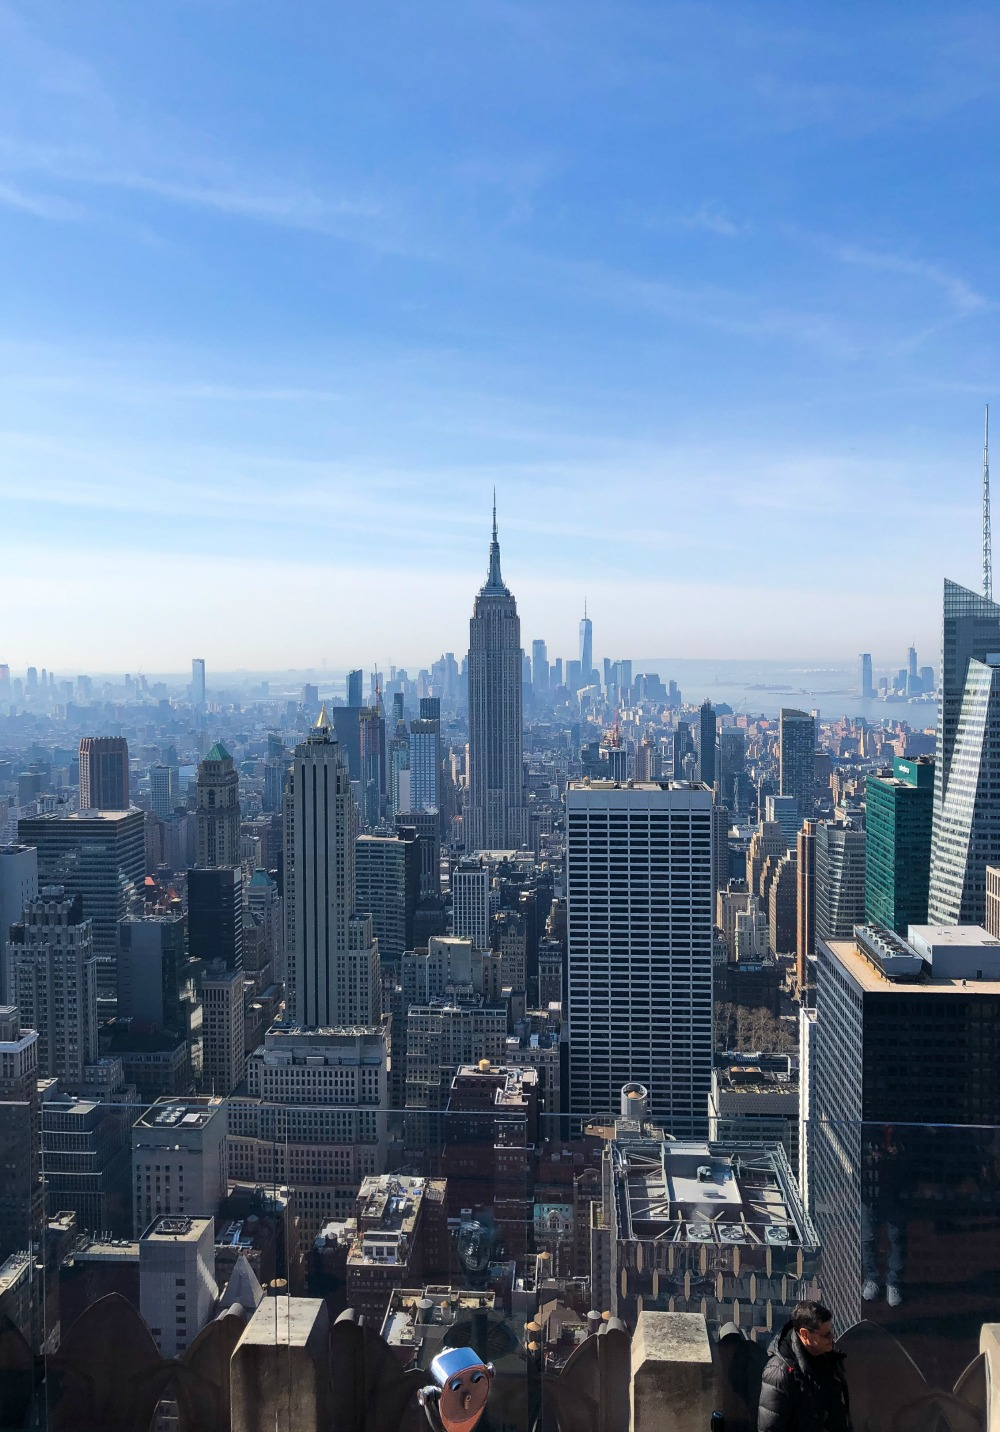 Affordable New York City Travel Guide I DreaminLace.com #NYC #Travel #TravelGuide